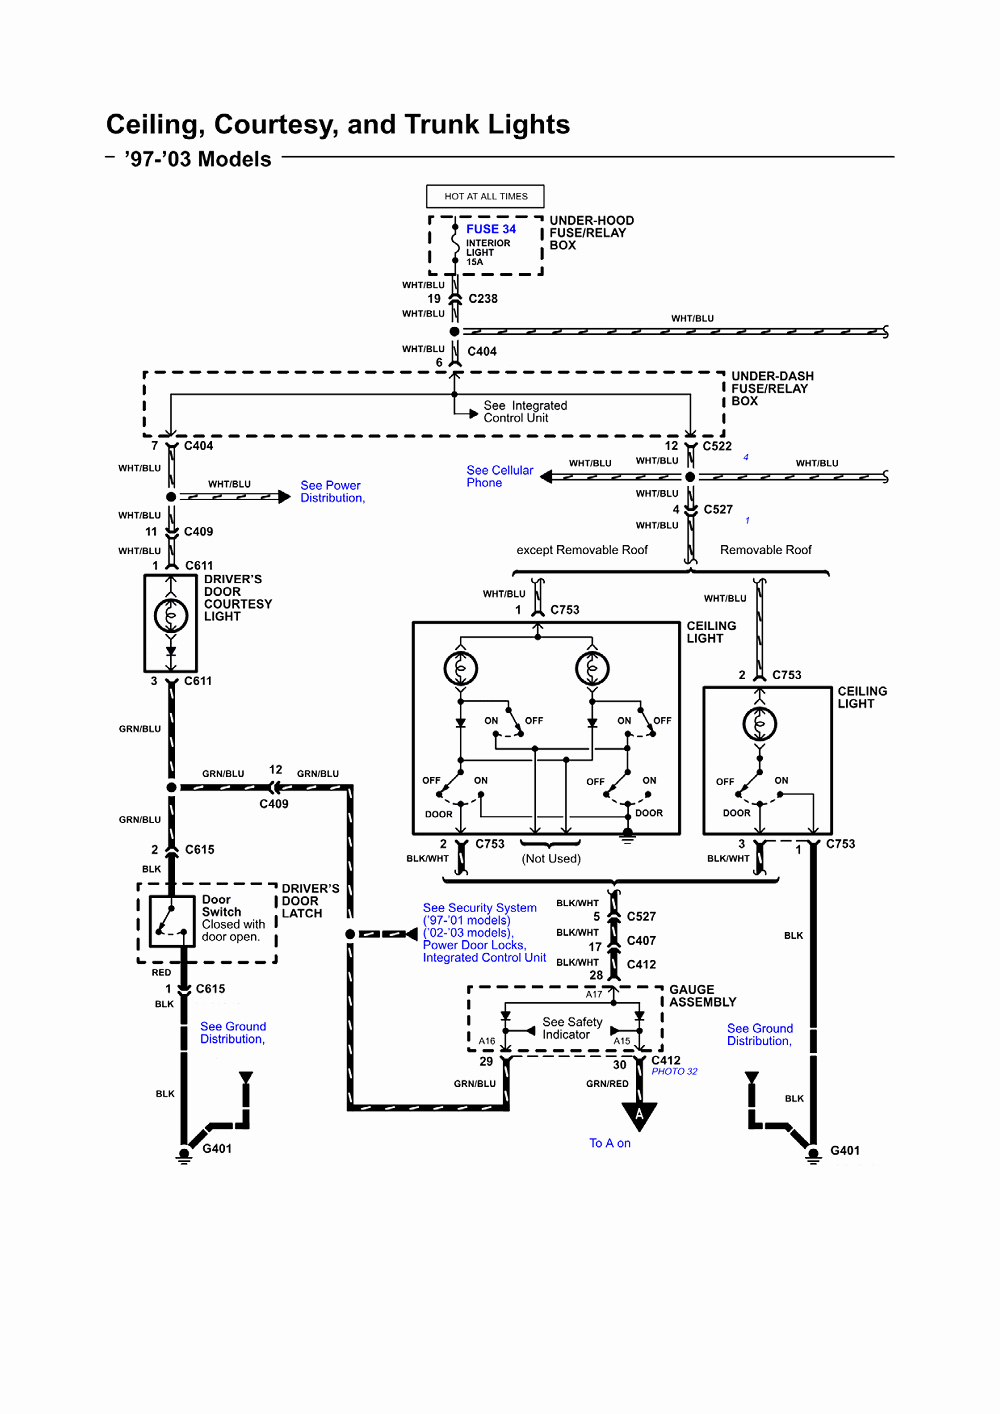 wiring diagram hunter ceiling fan read all wiring diagram Ceiling Fans with Lights Wiring-Diagram